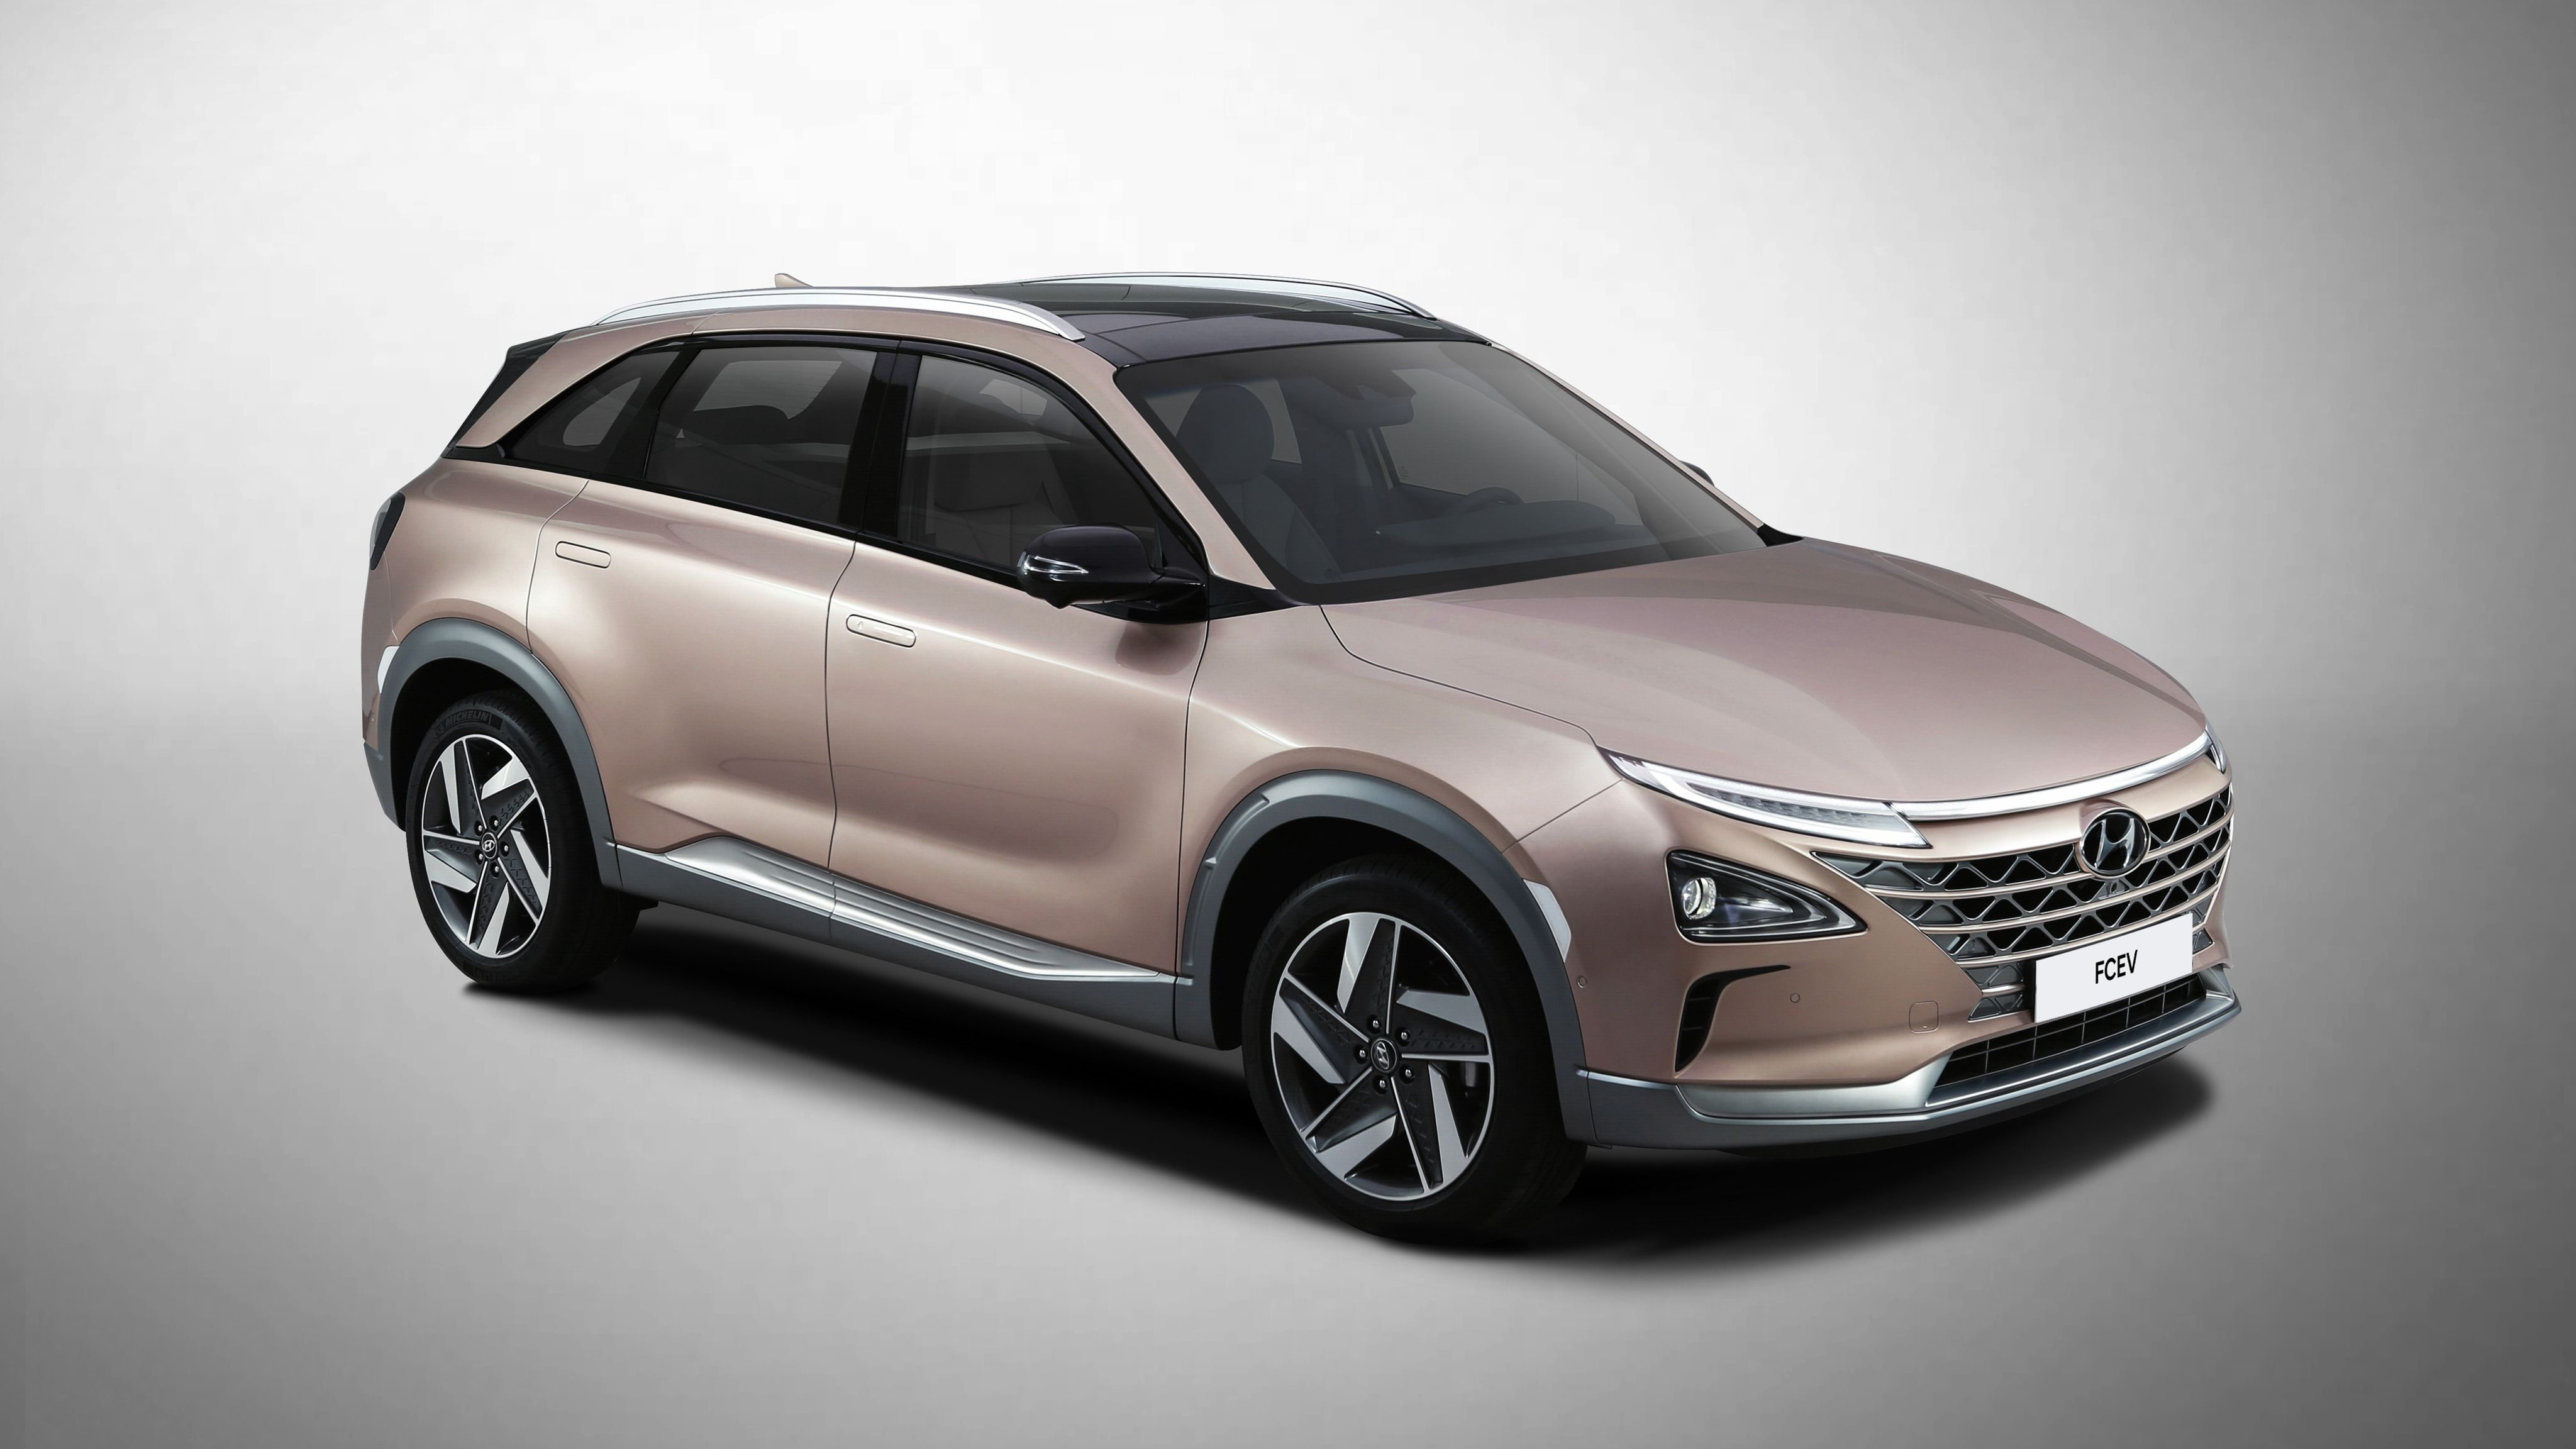 Hyundai Nexo Wallpapers YL Computing 4096x2304